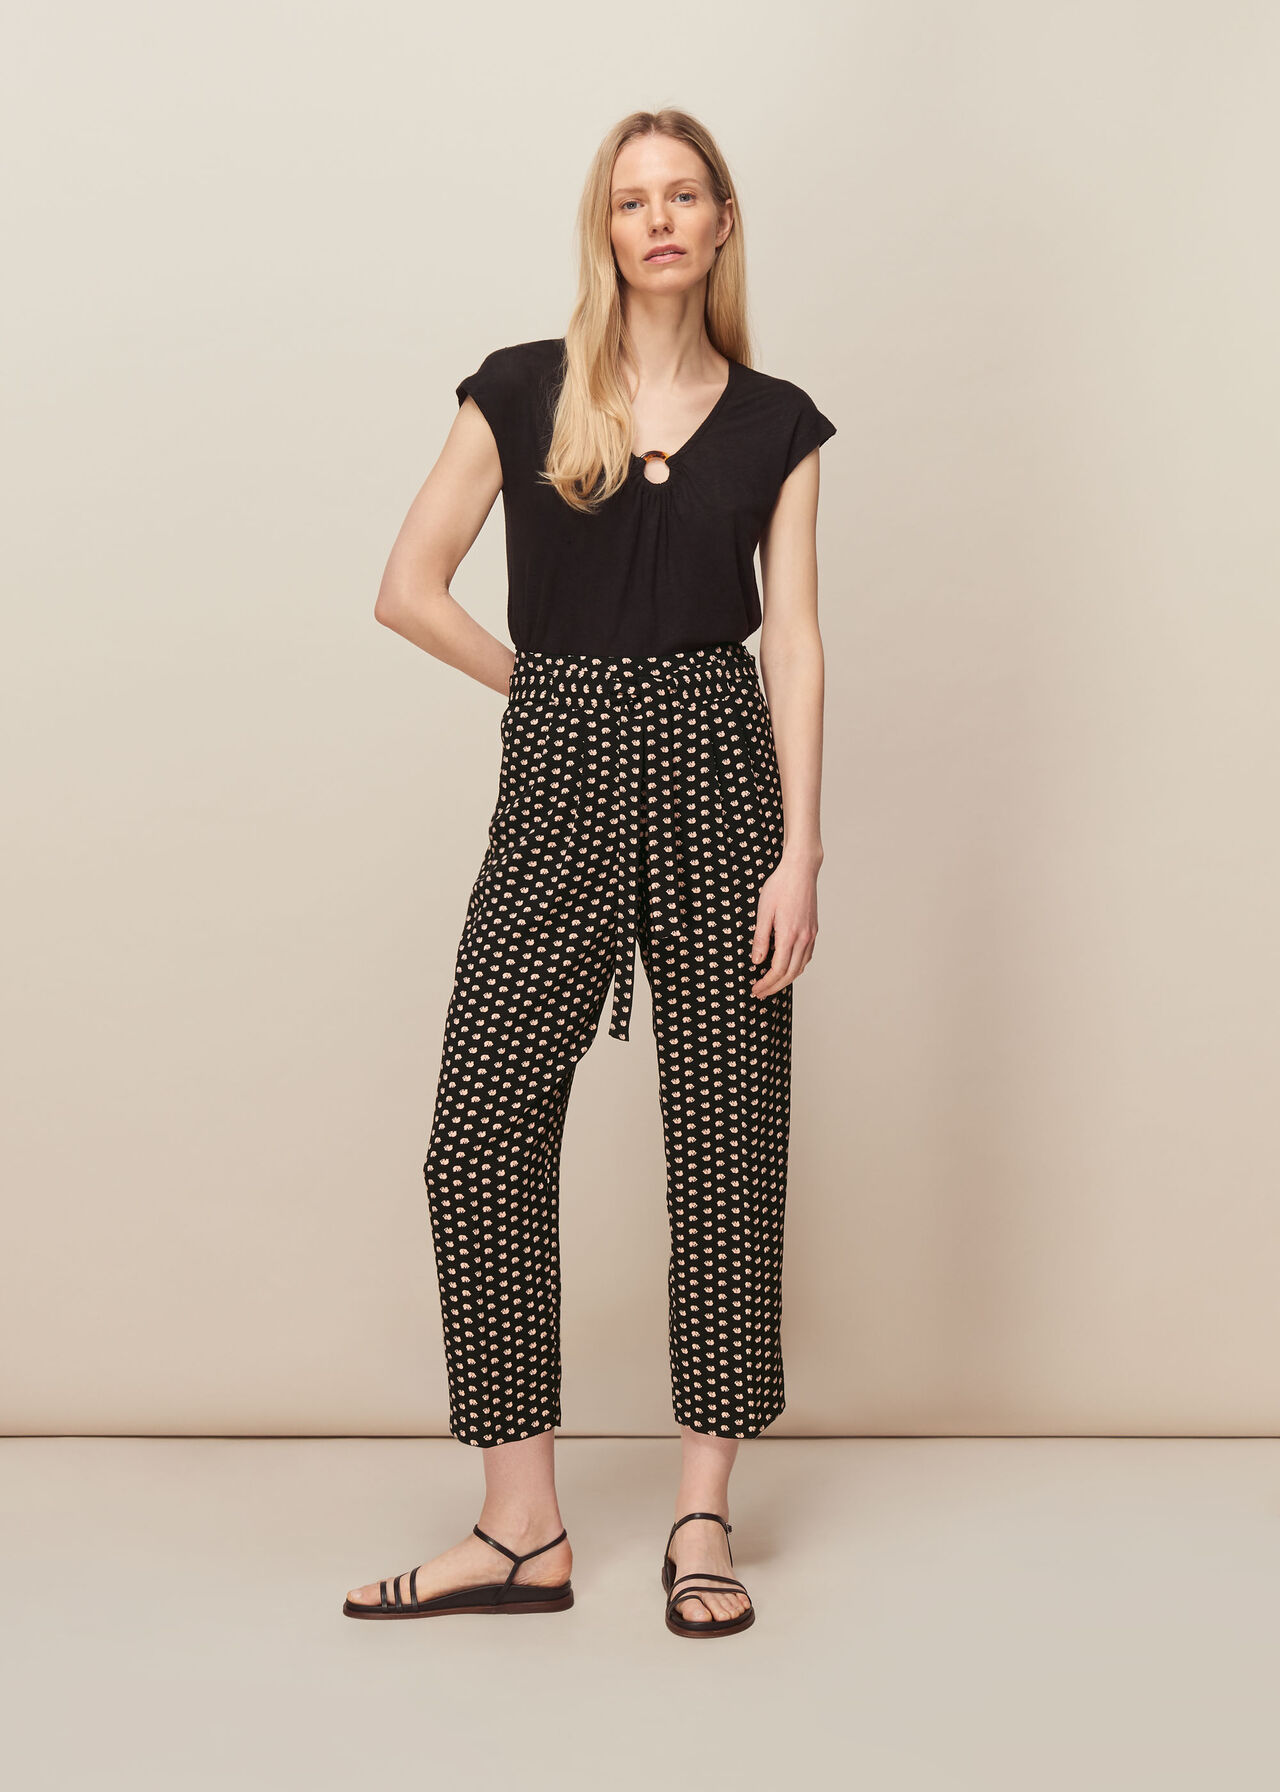 Elephant Print Crepe Trouser Black/Multi